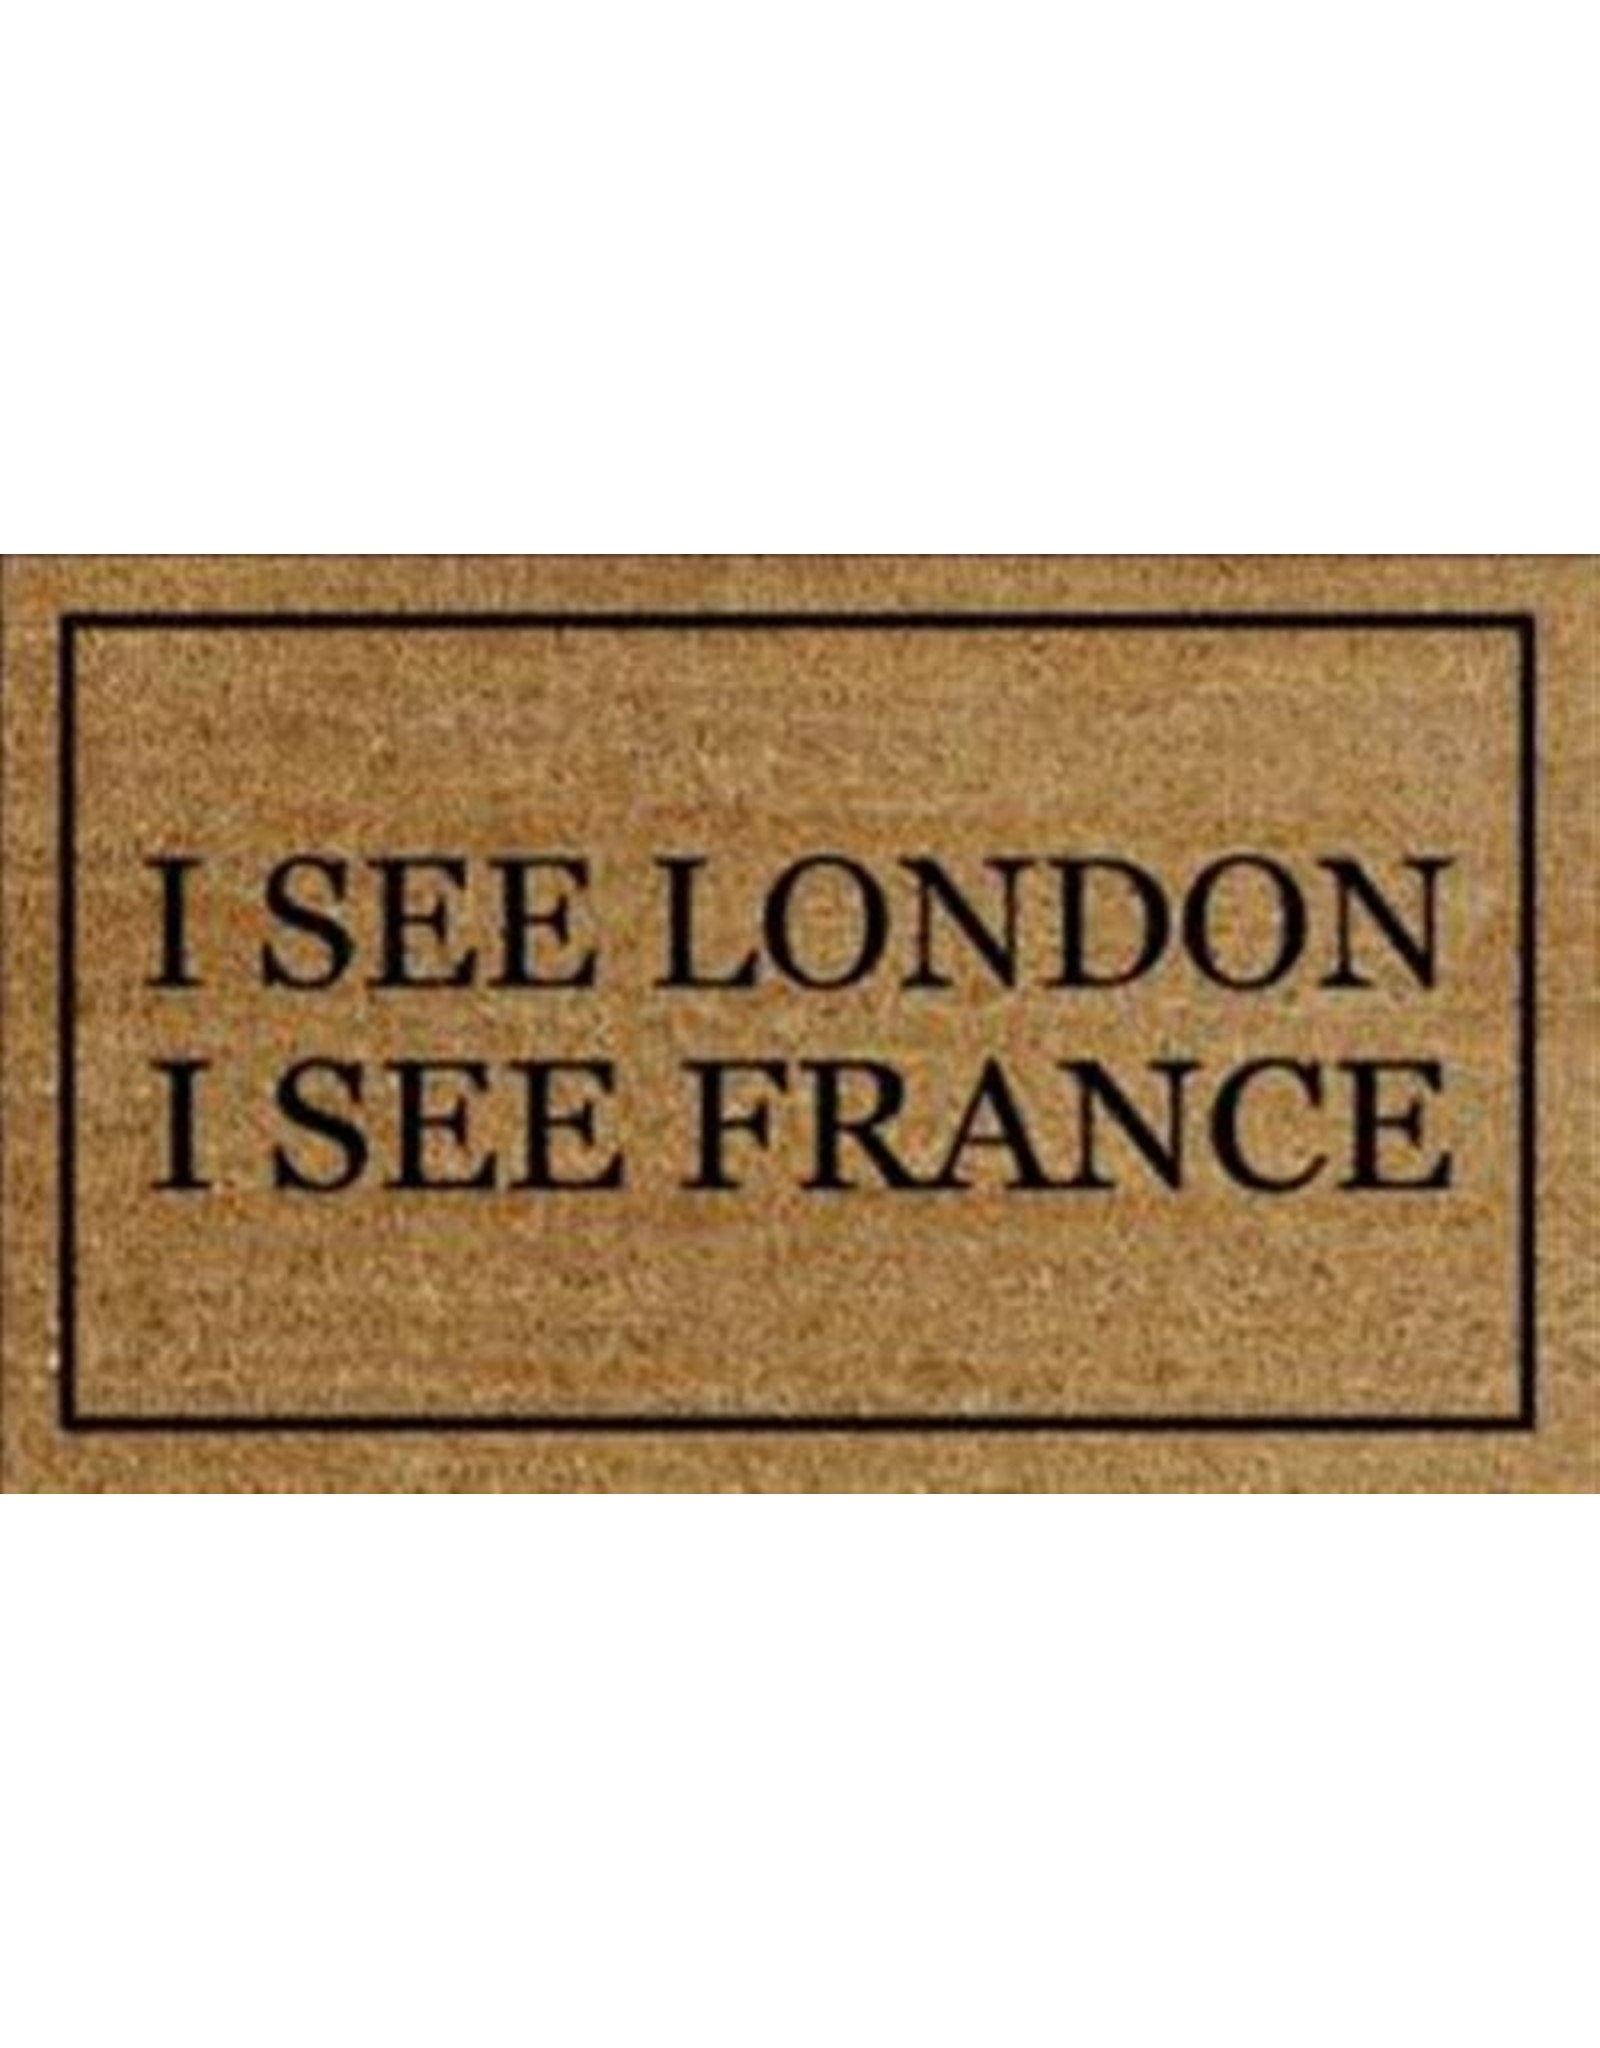 TCE I See London, I See France Doormat